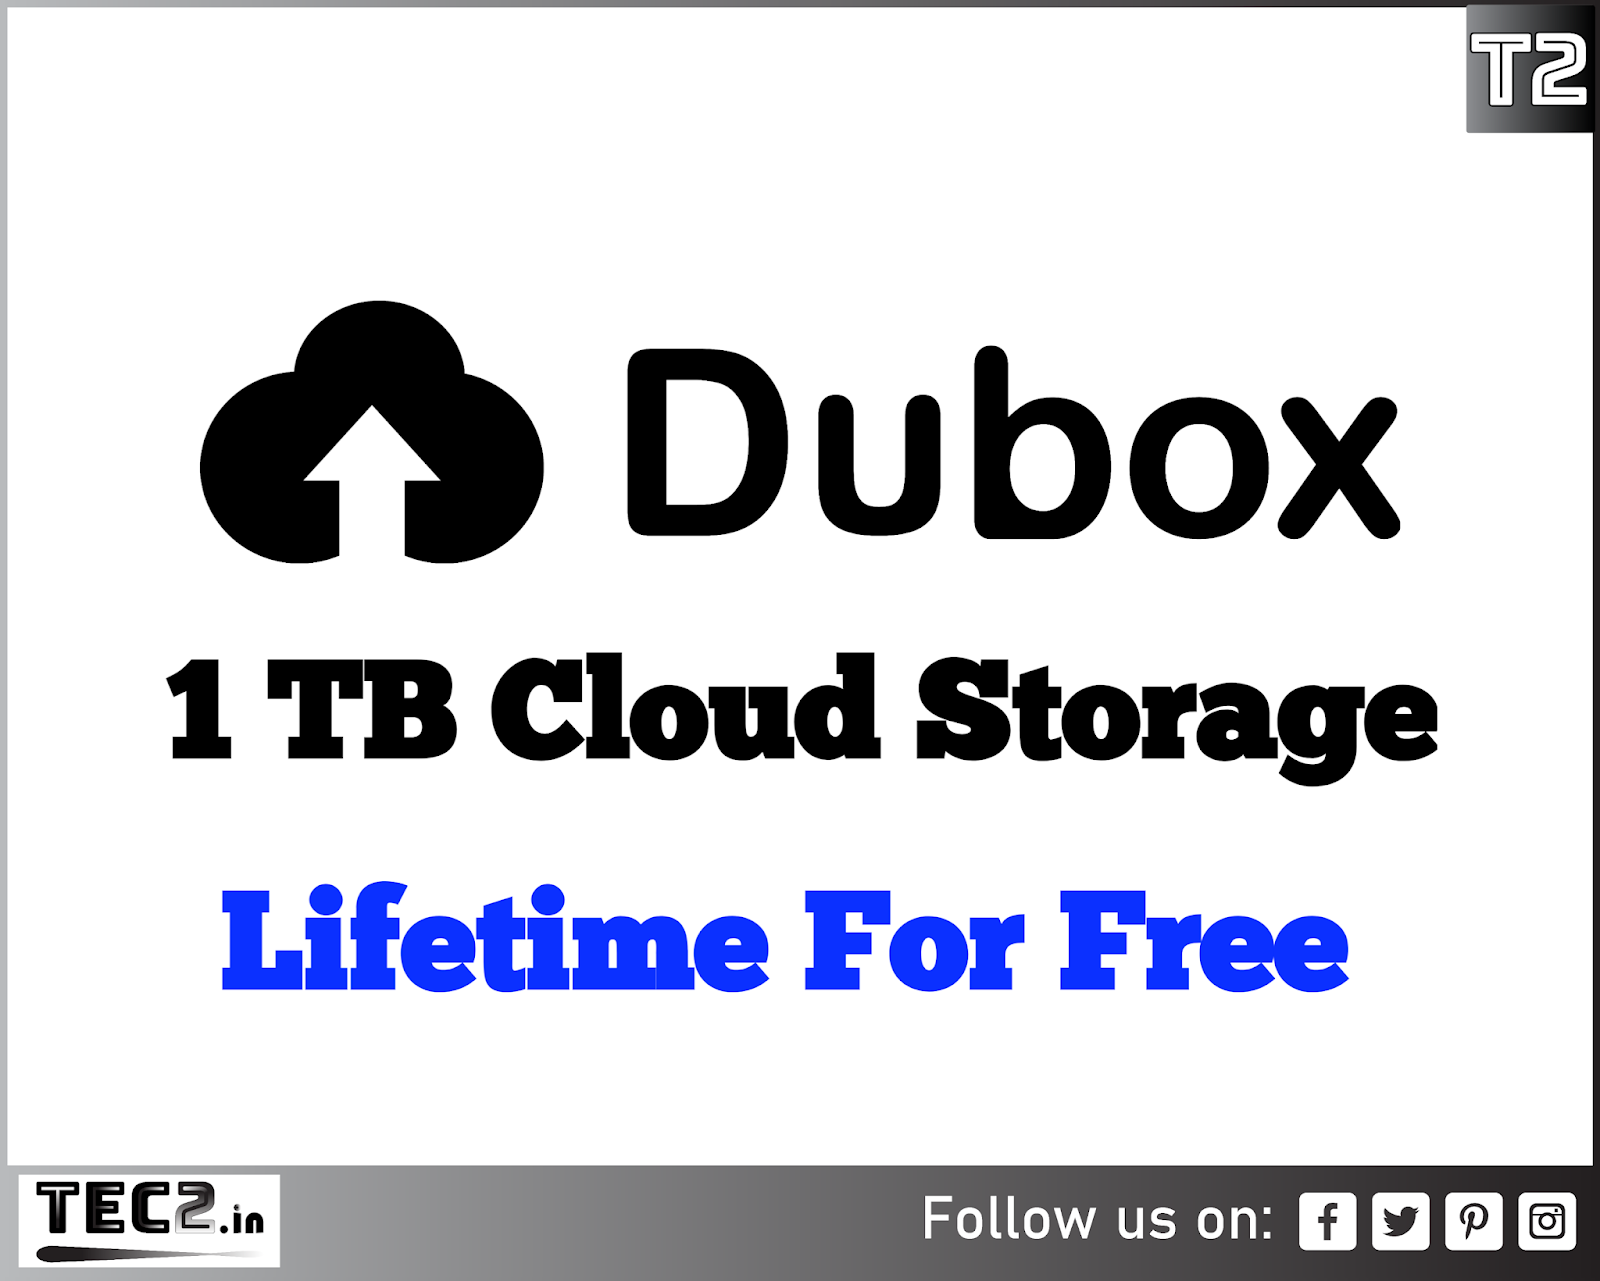 1 TB Cloud Storage Free : Dubox